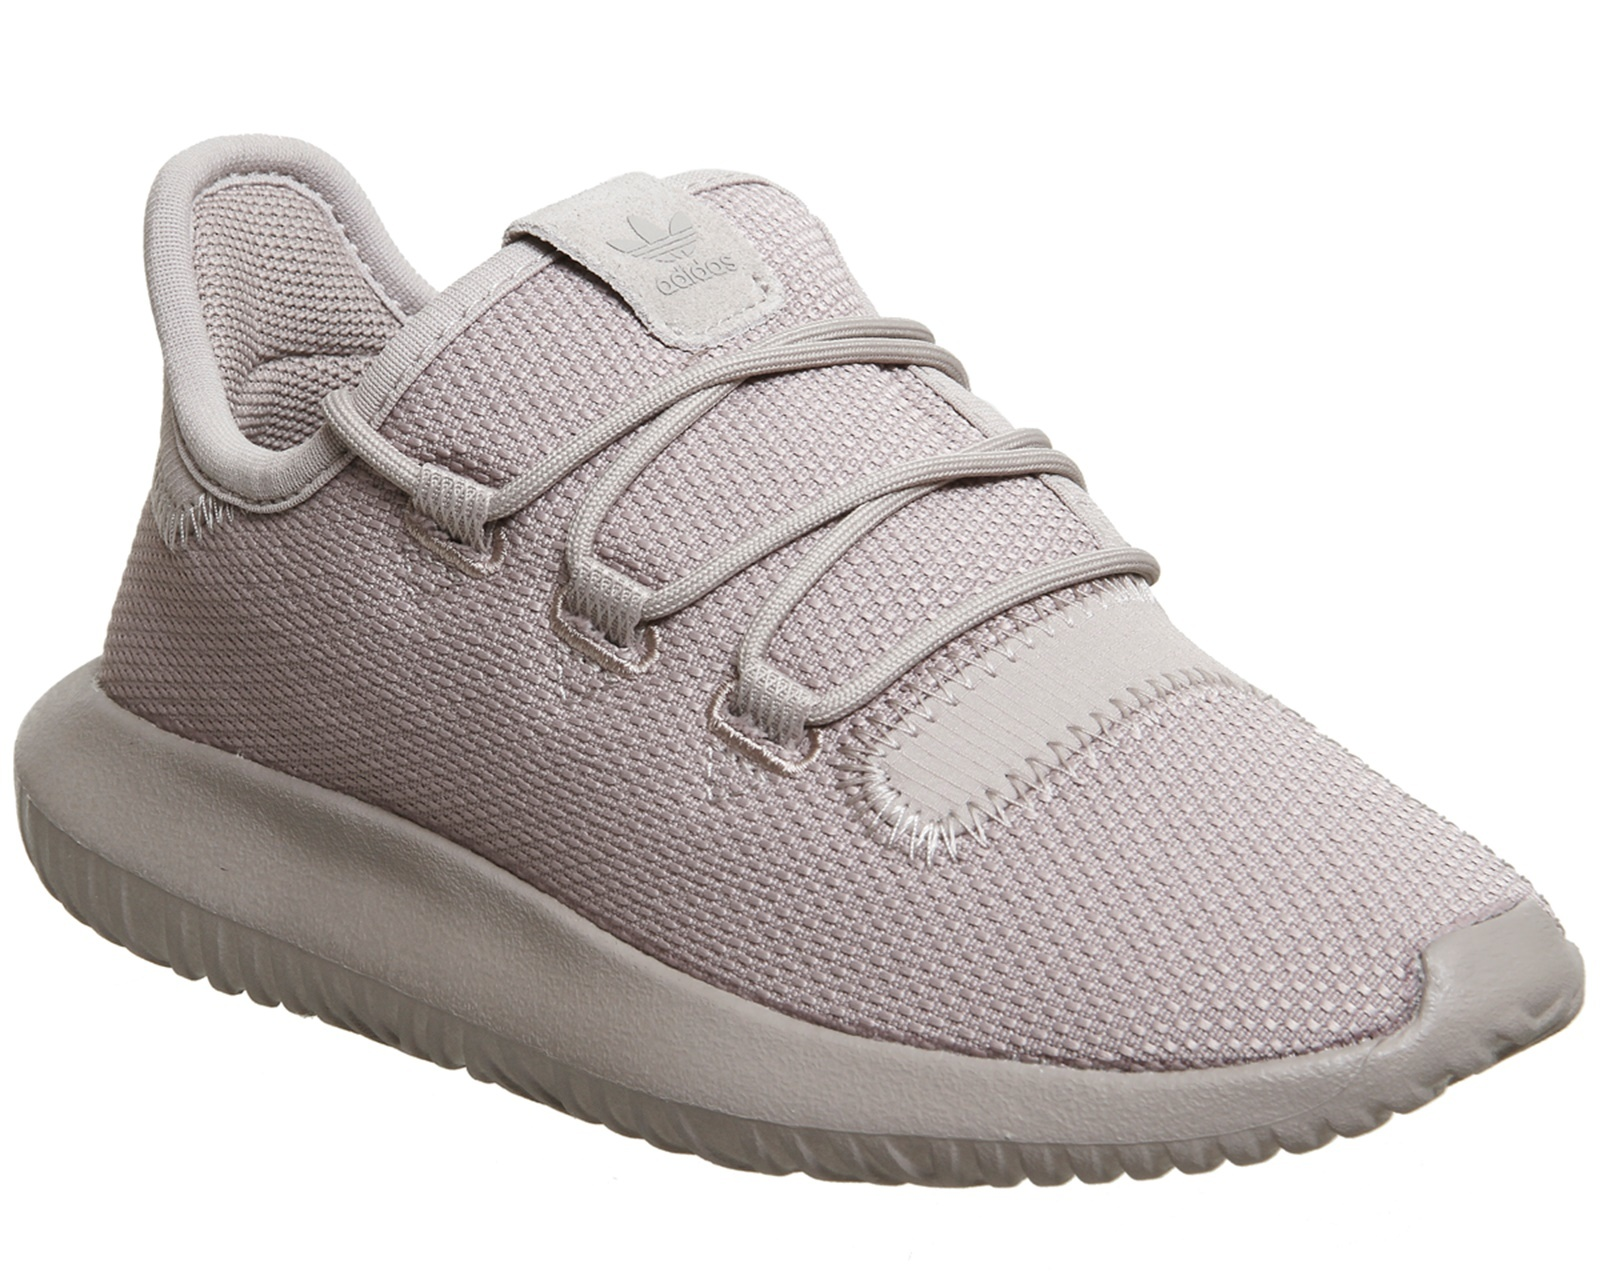 sports shoes dca59 88215 fit to viewer. prev next. 아디다스 Adidas Tubular Shadow Kids ...